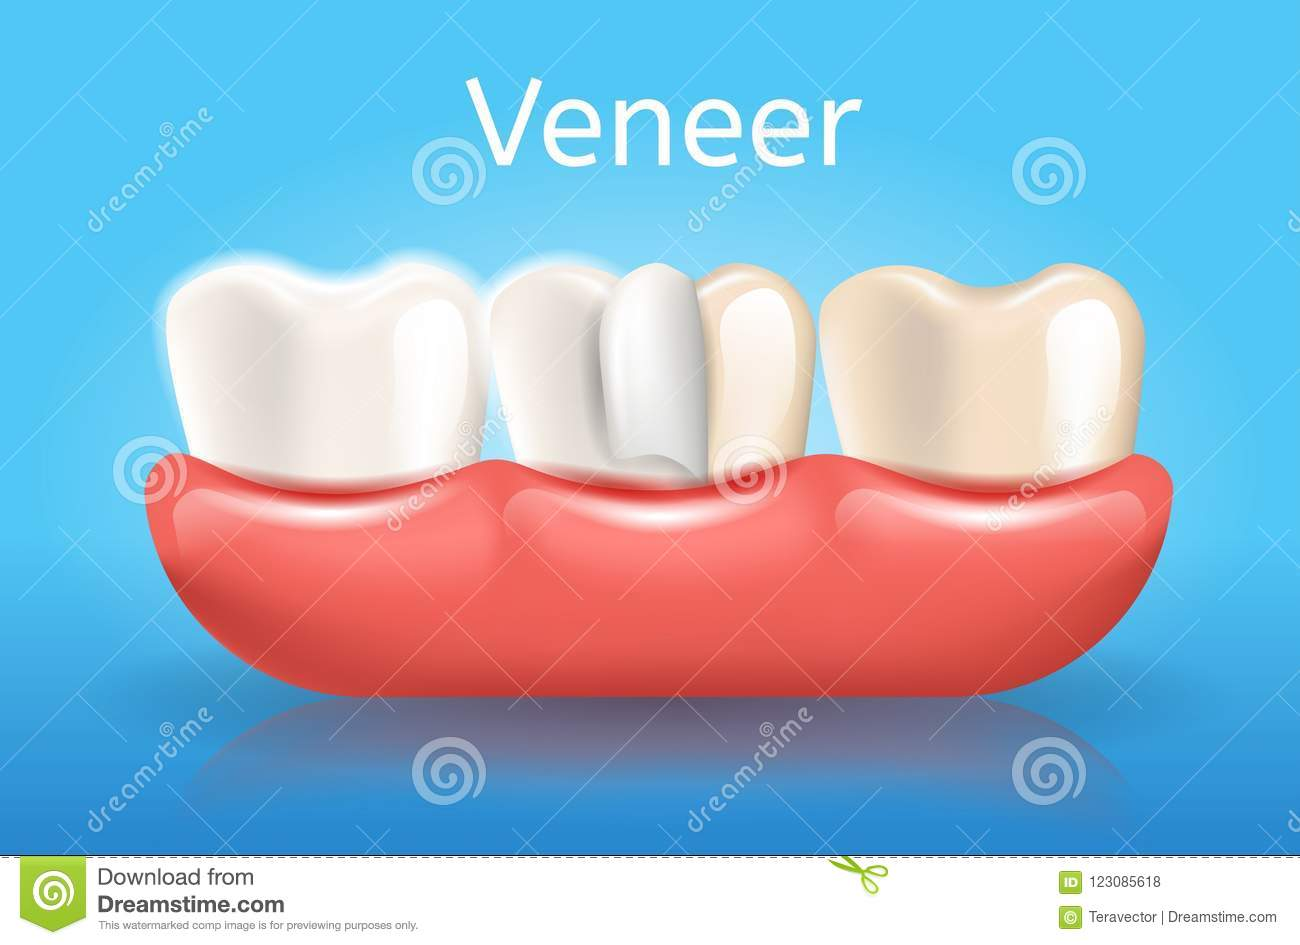 hight resolution of veneer realistic vector medical dentistry poster with thin composite laminate protective layer on human tooth in gums 3d illustration